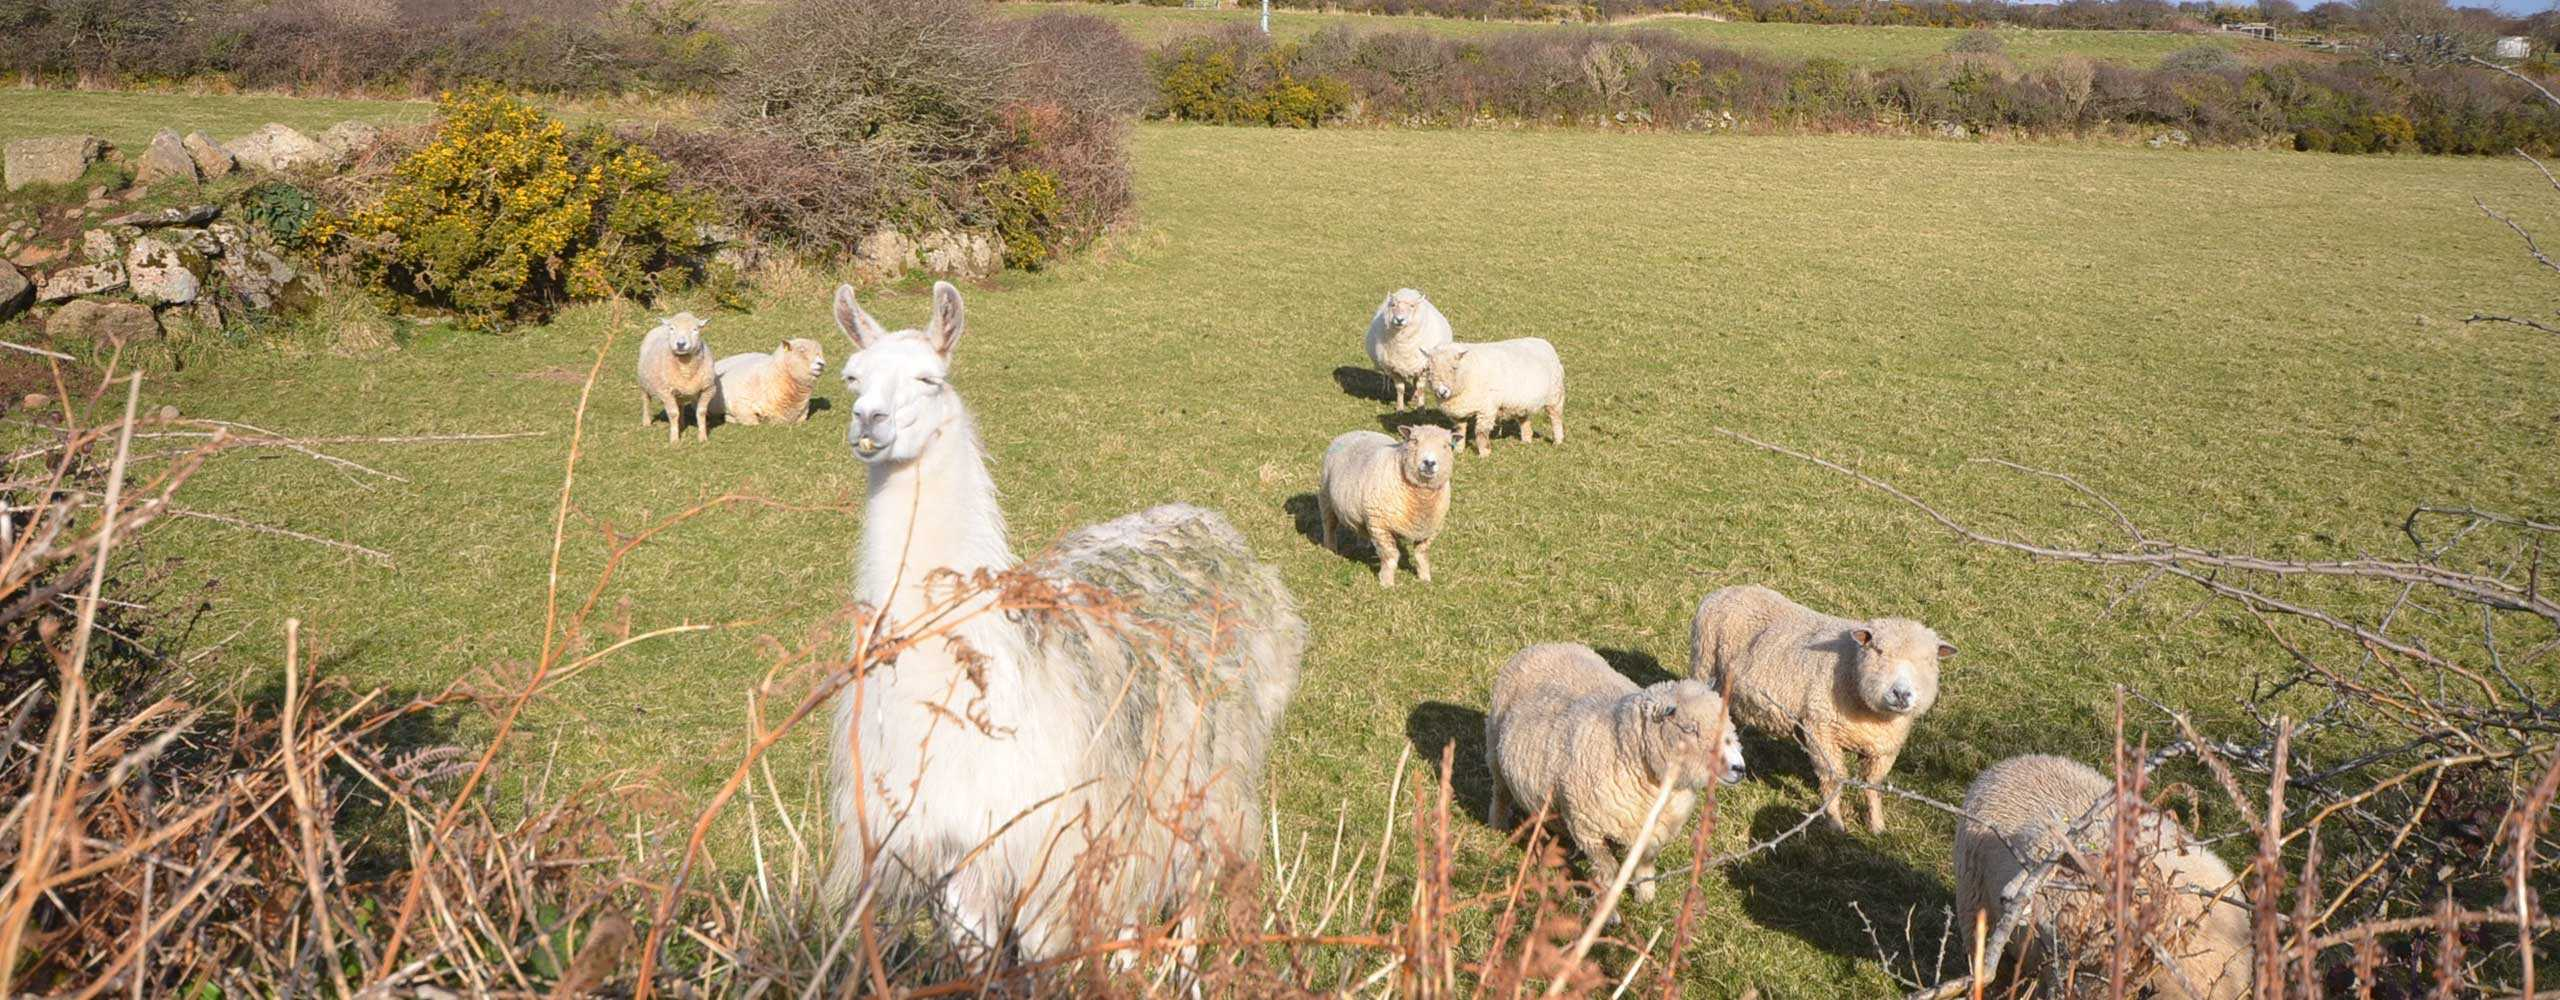 sheep and llama at Castallack Farm